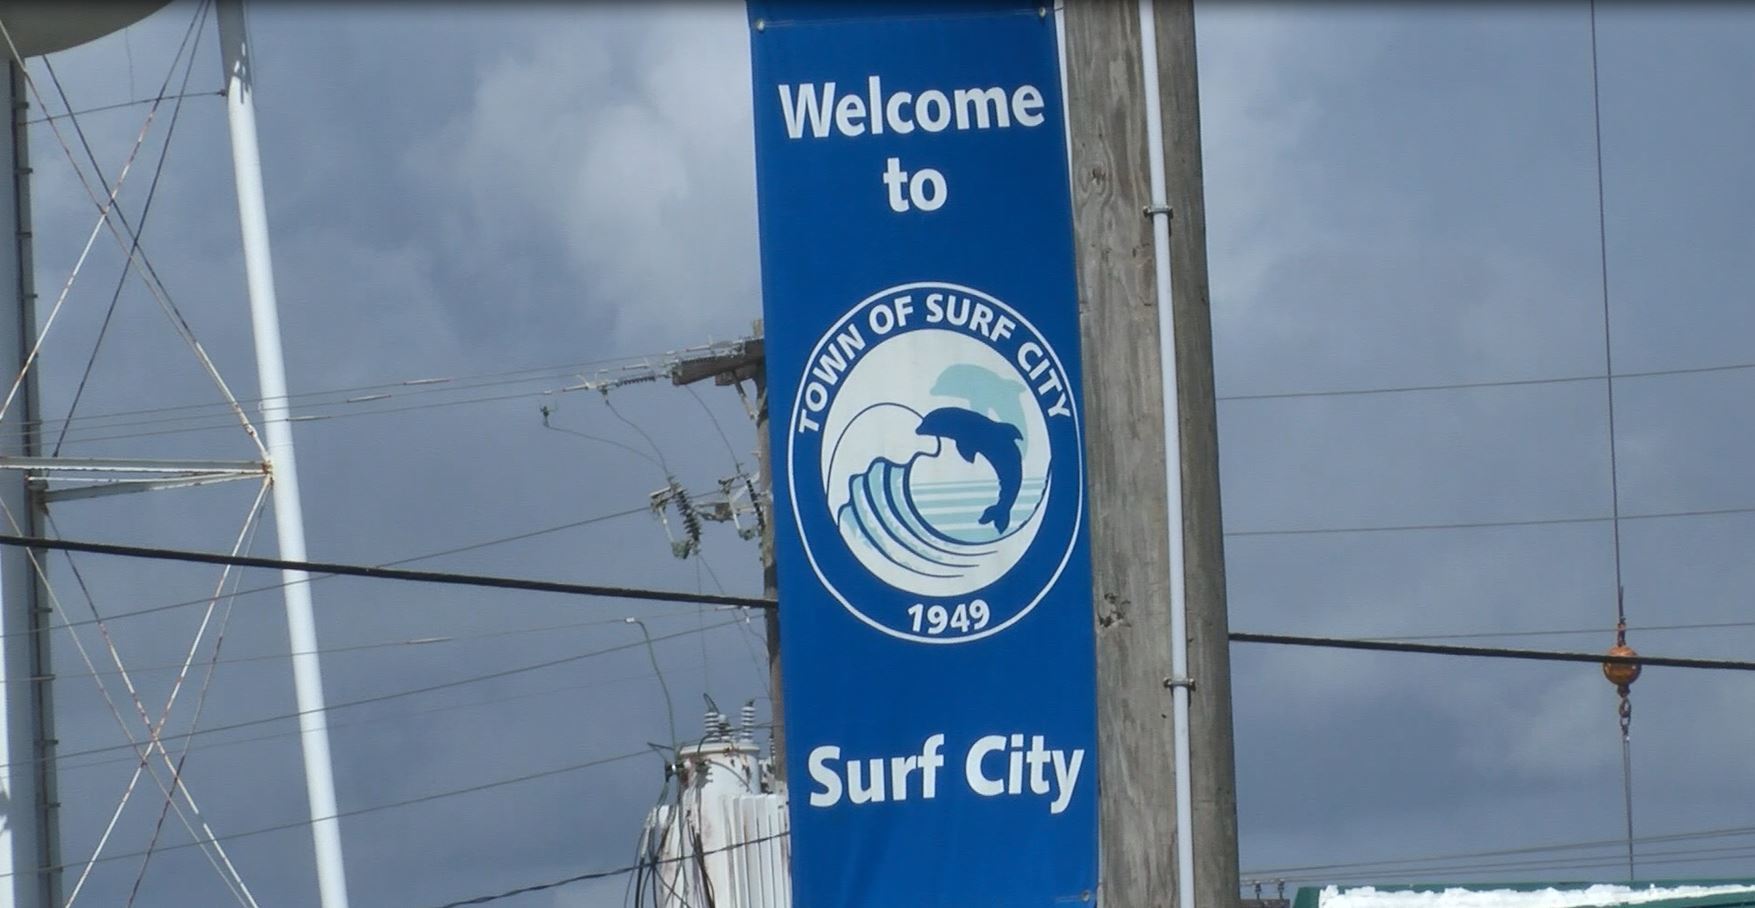 surf city sign_1526506653011.JPG.jpg